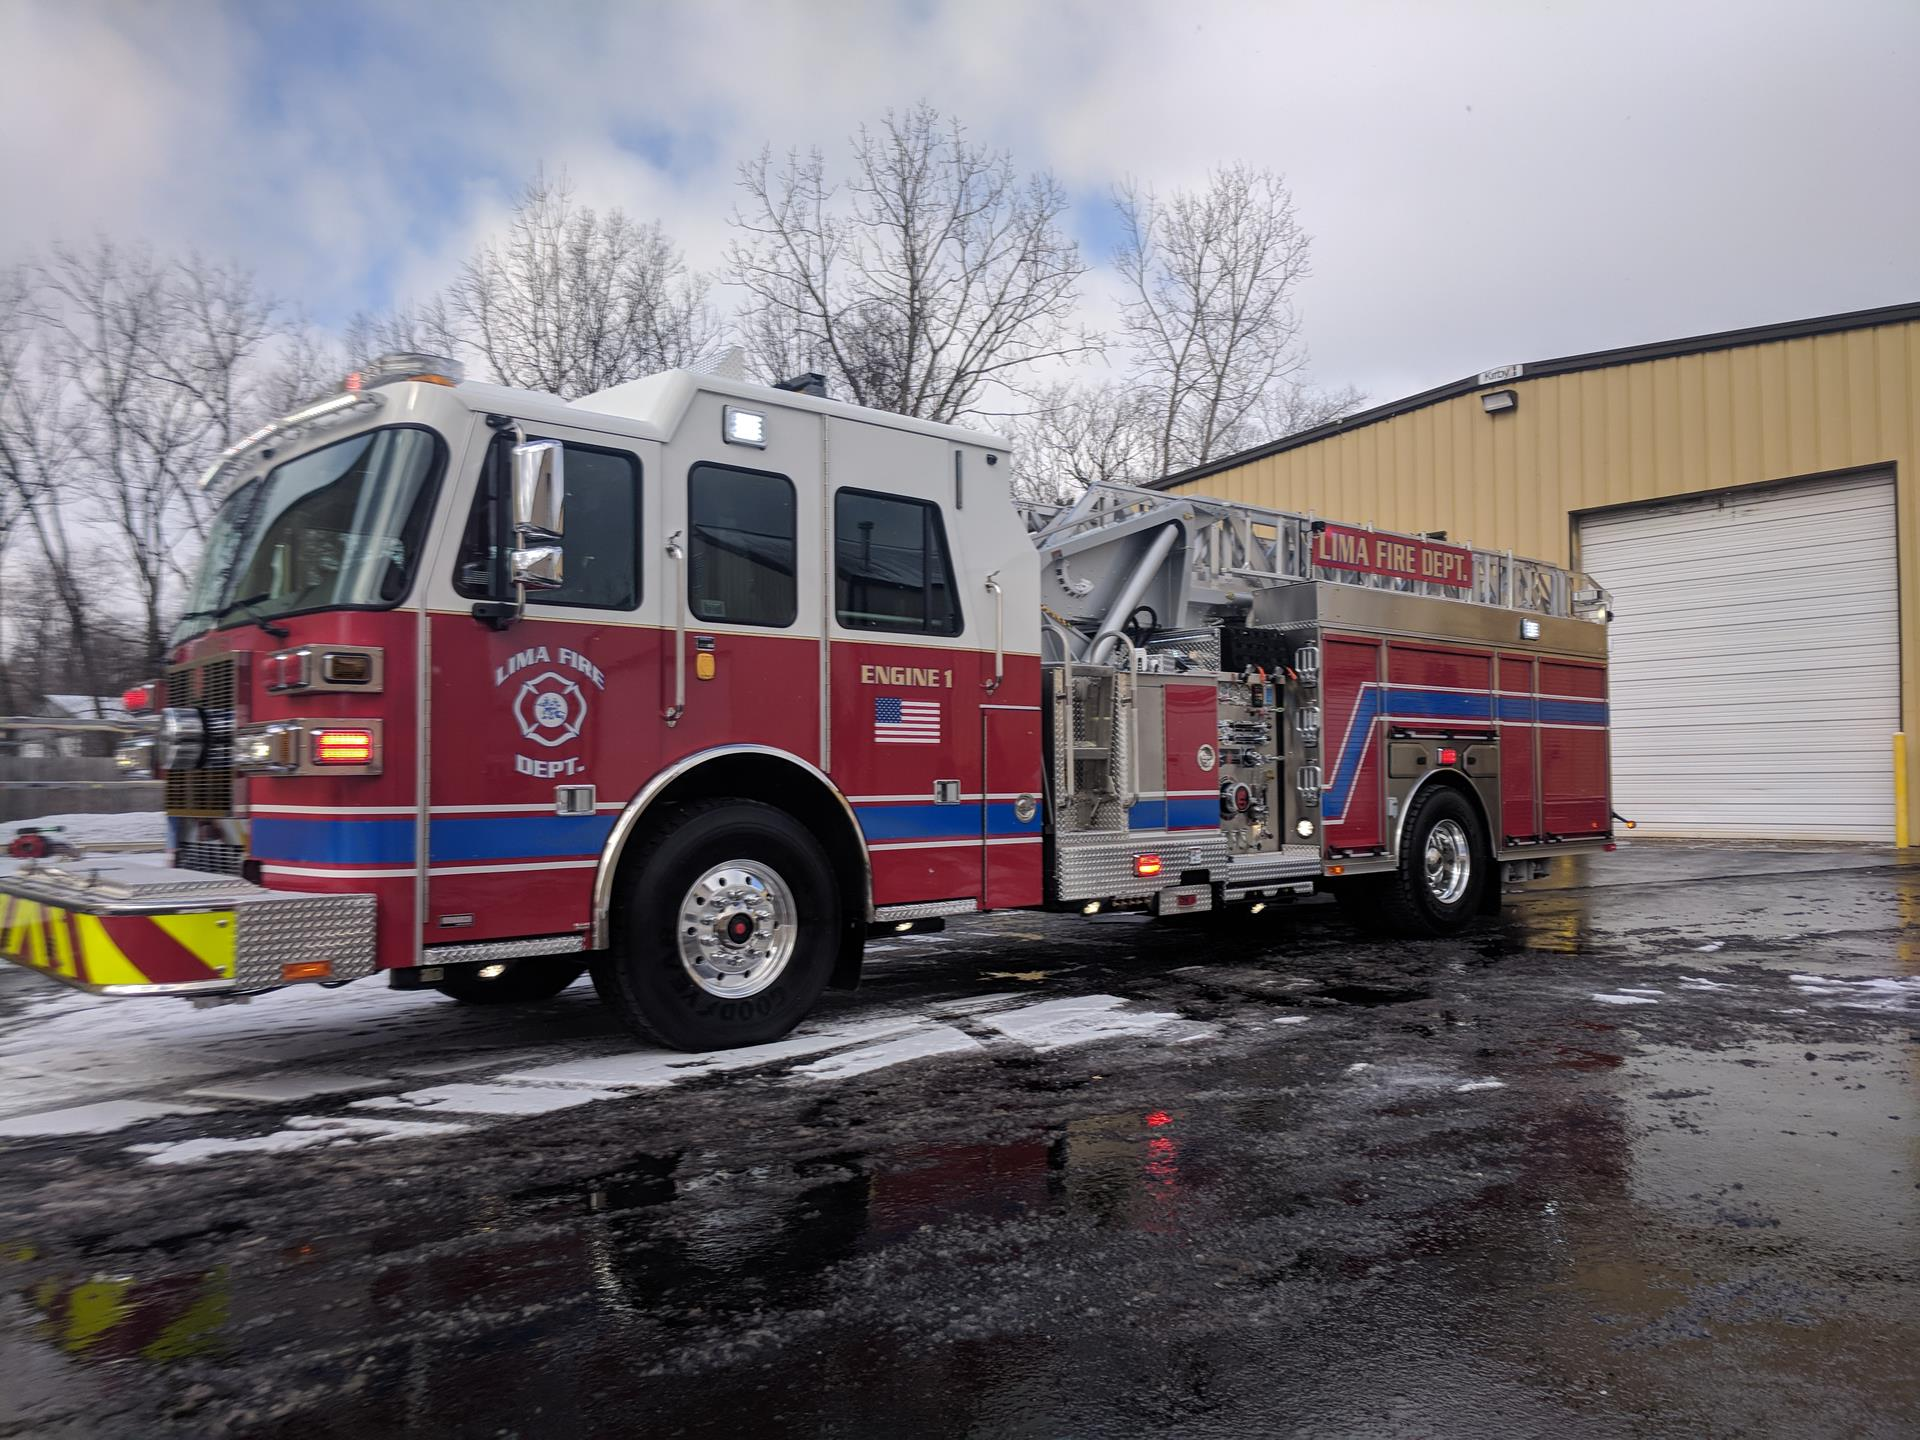 Lima Fire Department, OH